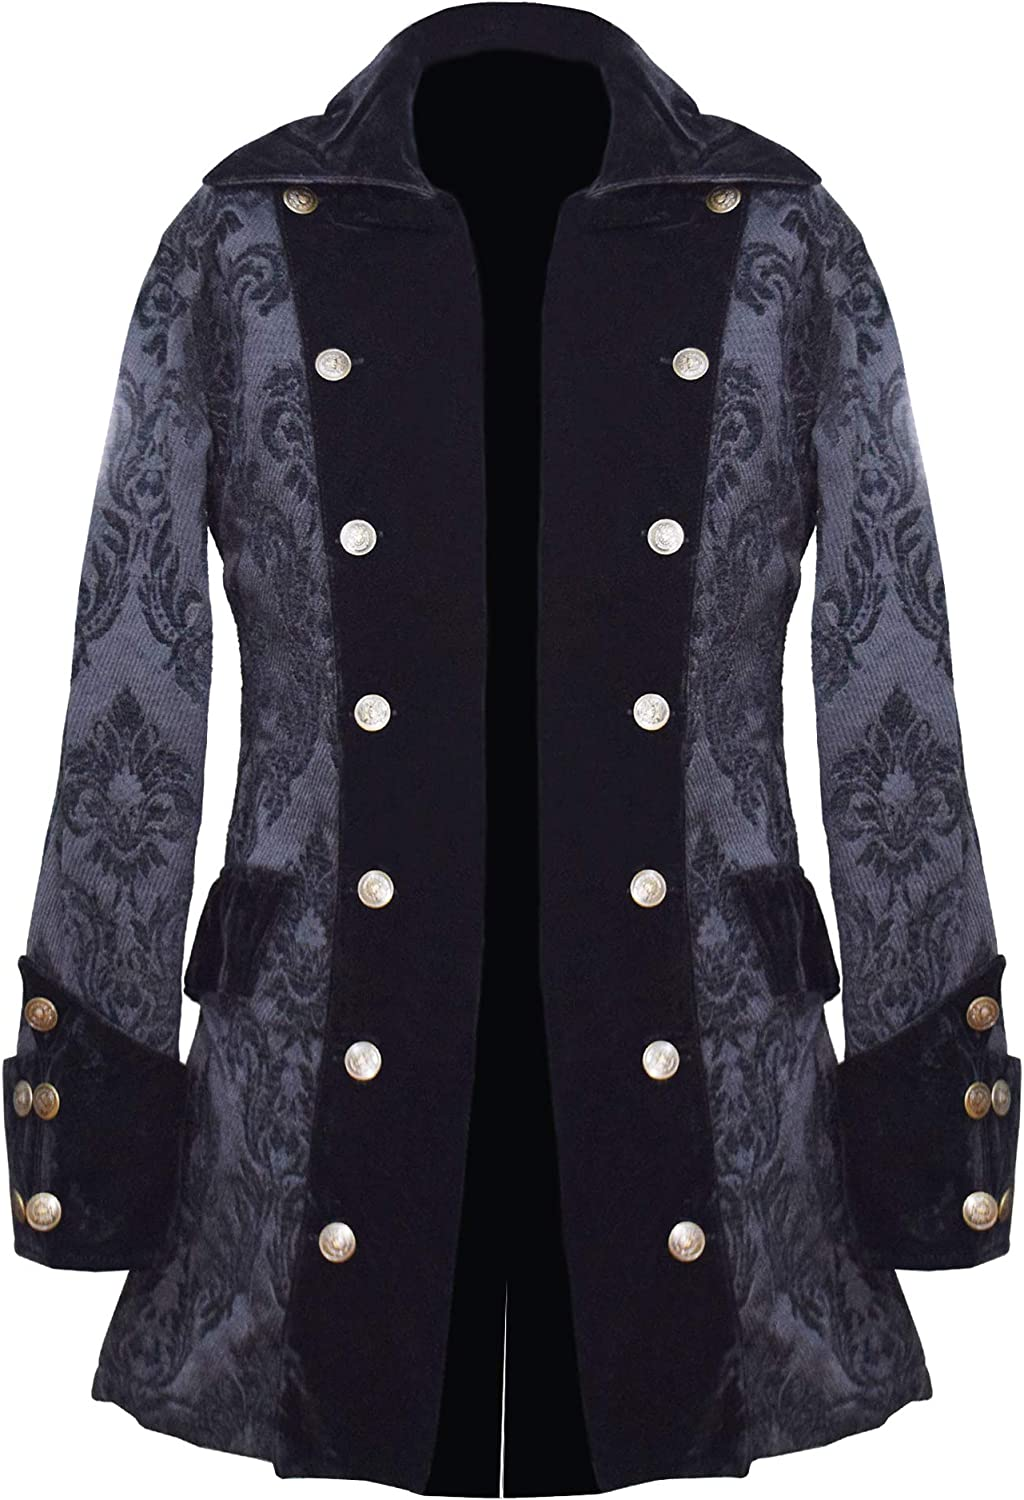 AAYLANS BLACK BROCADE LONG PIRATE COAT MADE OF 100% COTTON WITH FLEECE LINING